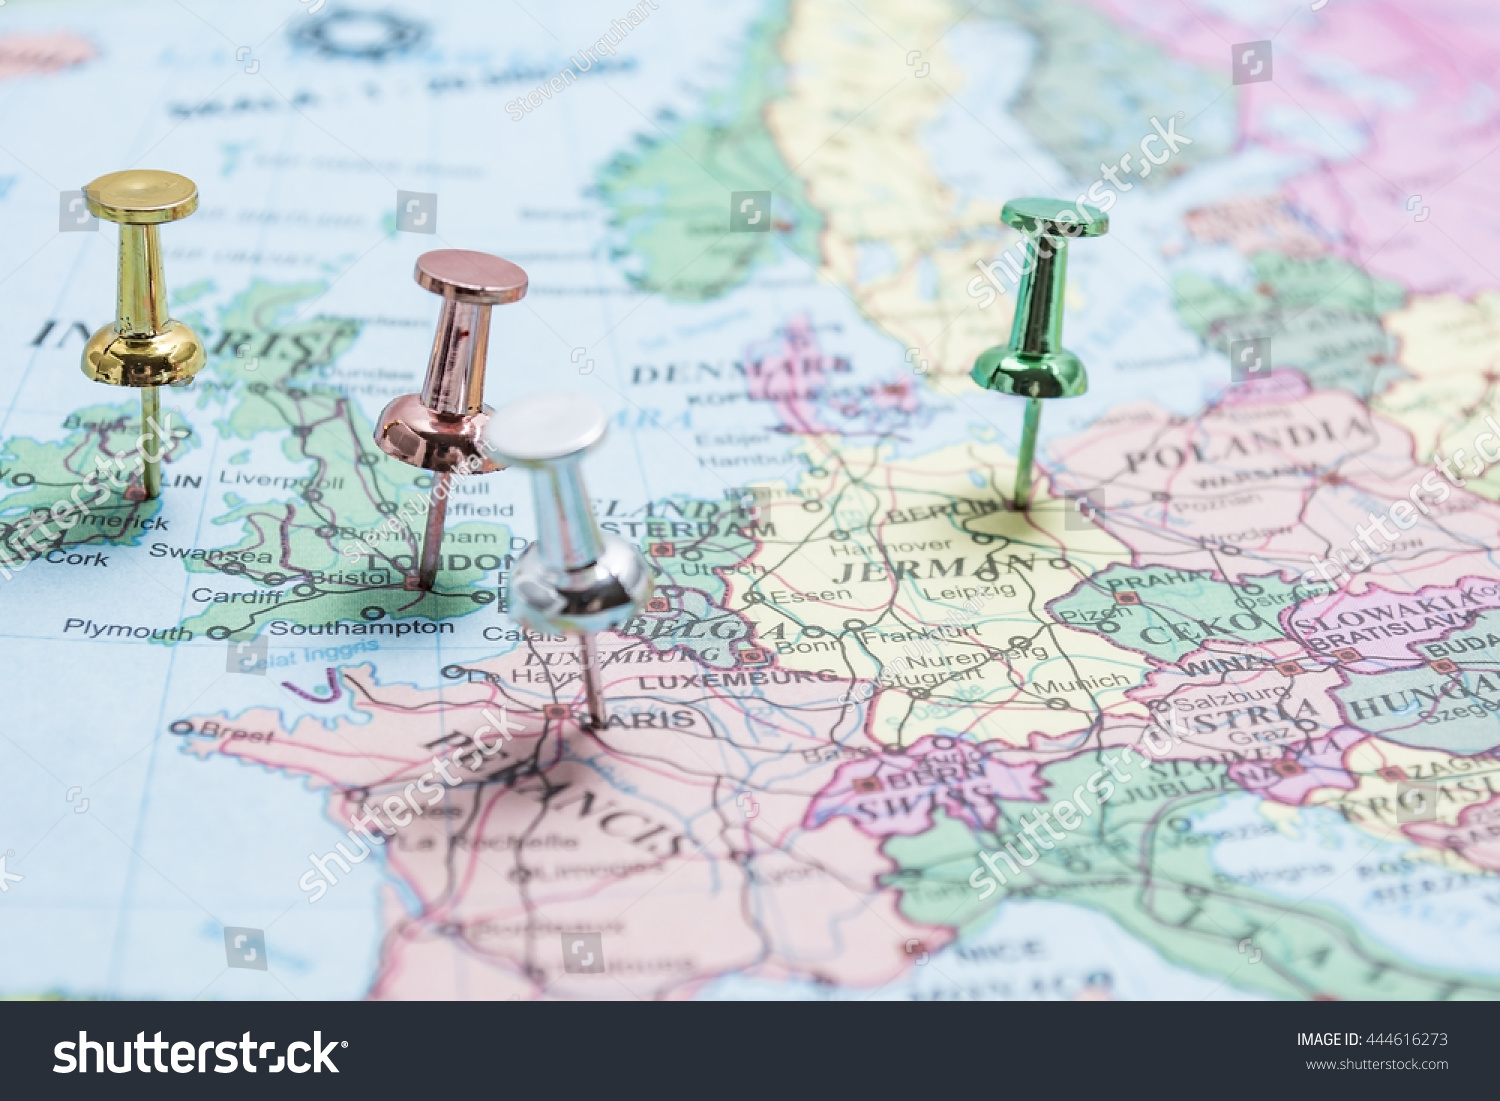 Calais Europe Map.Map Europe Pins On Major Cities Stock Photo Edit Now 444616273